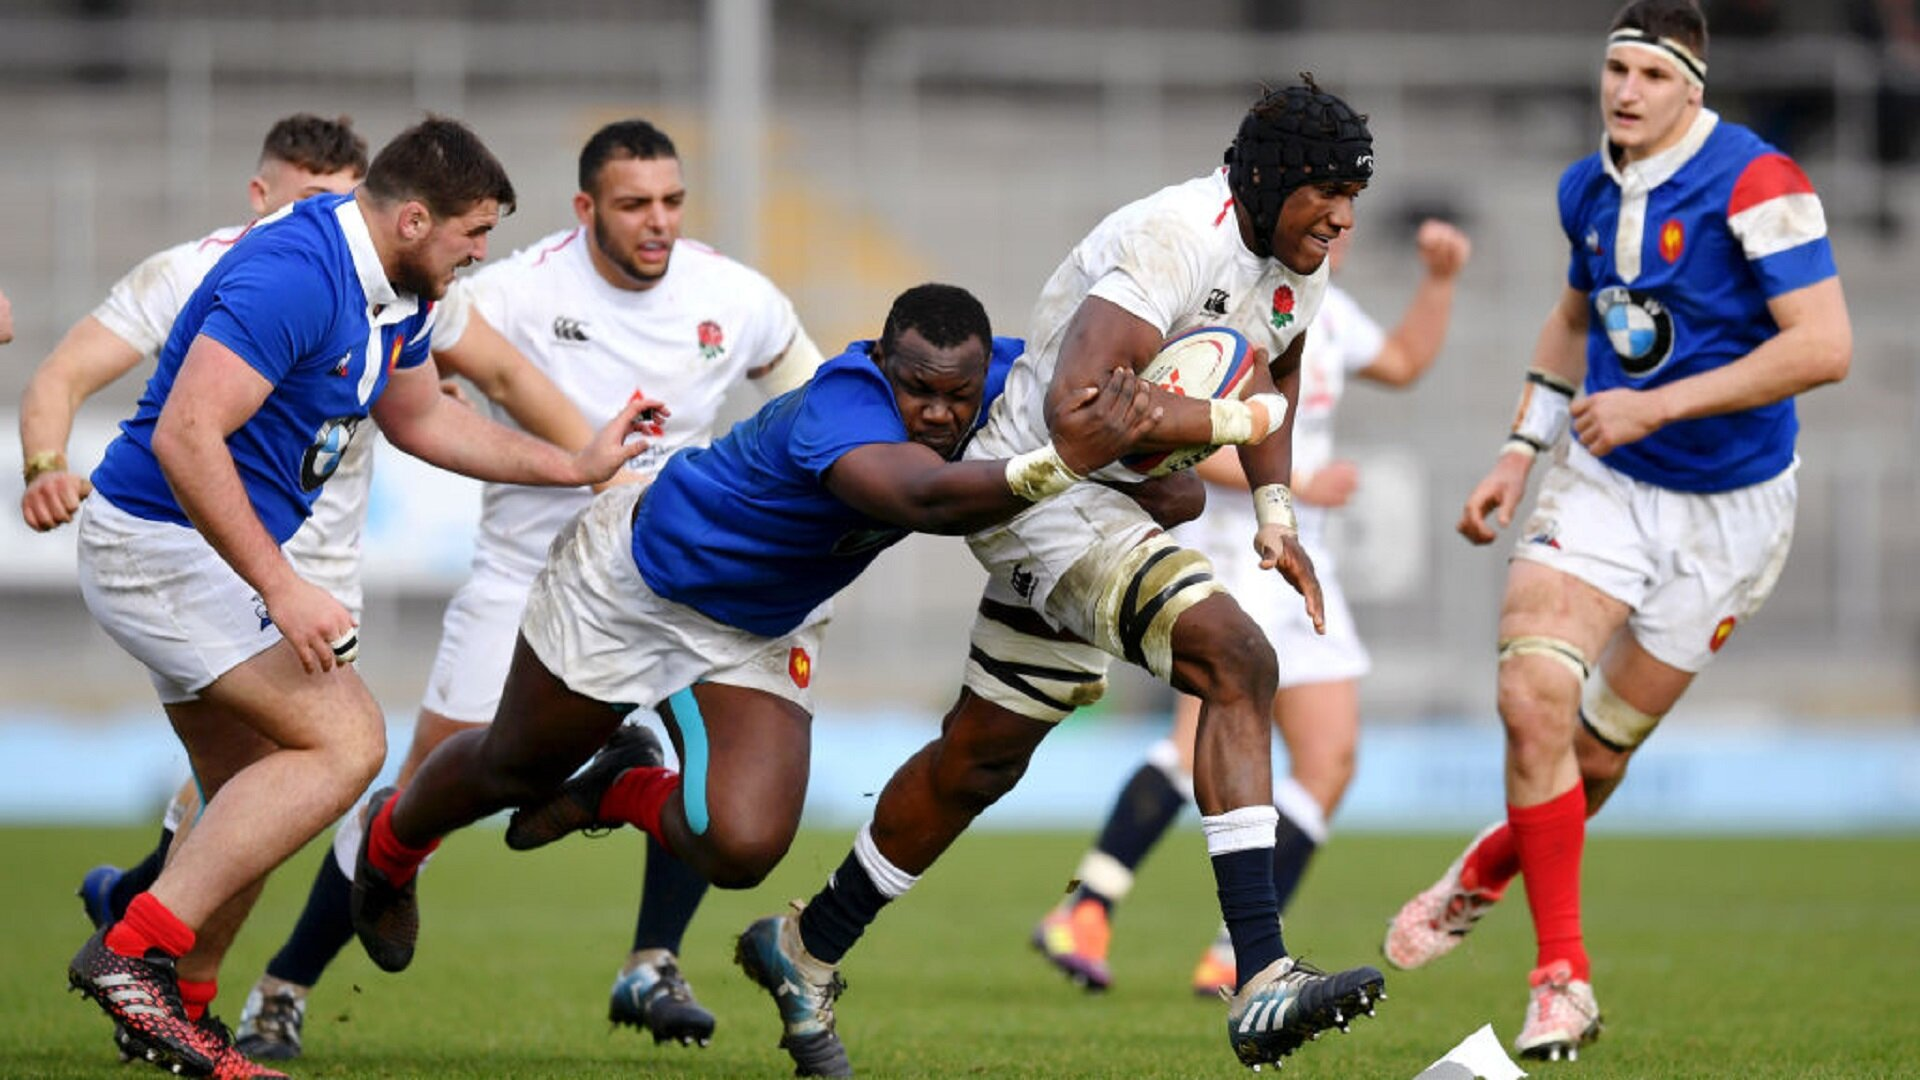 Kpoku snubs Saints move and re-signs with Saracens